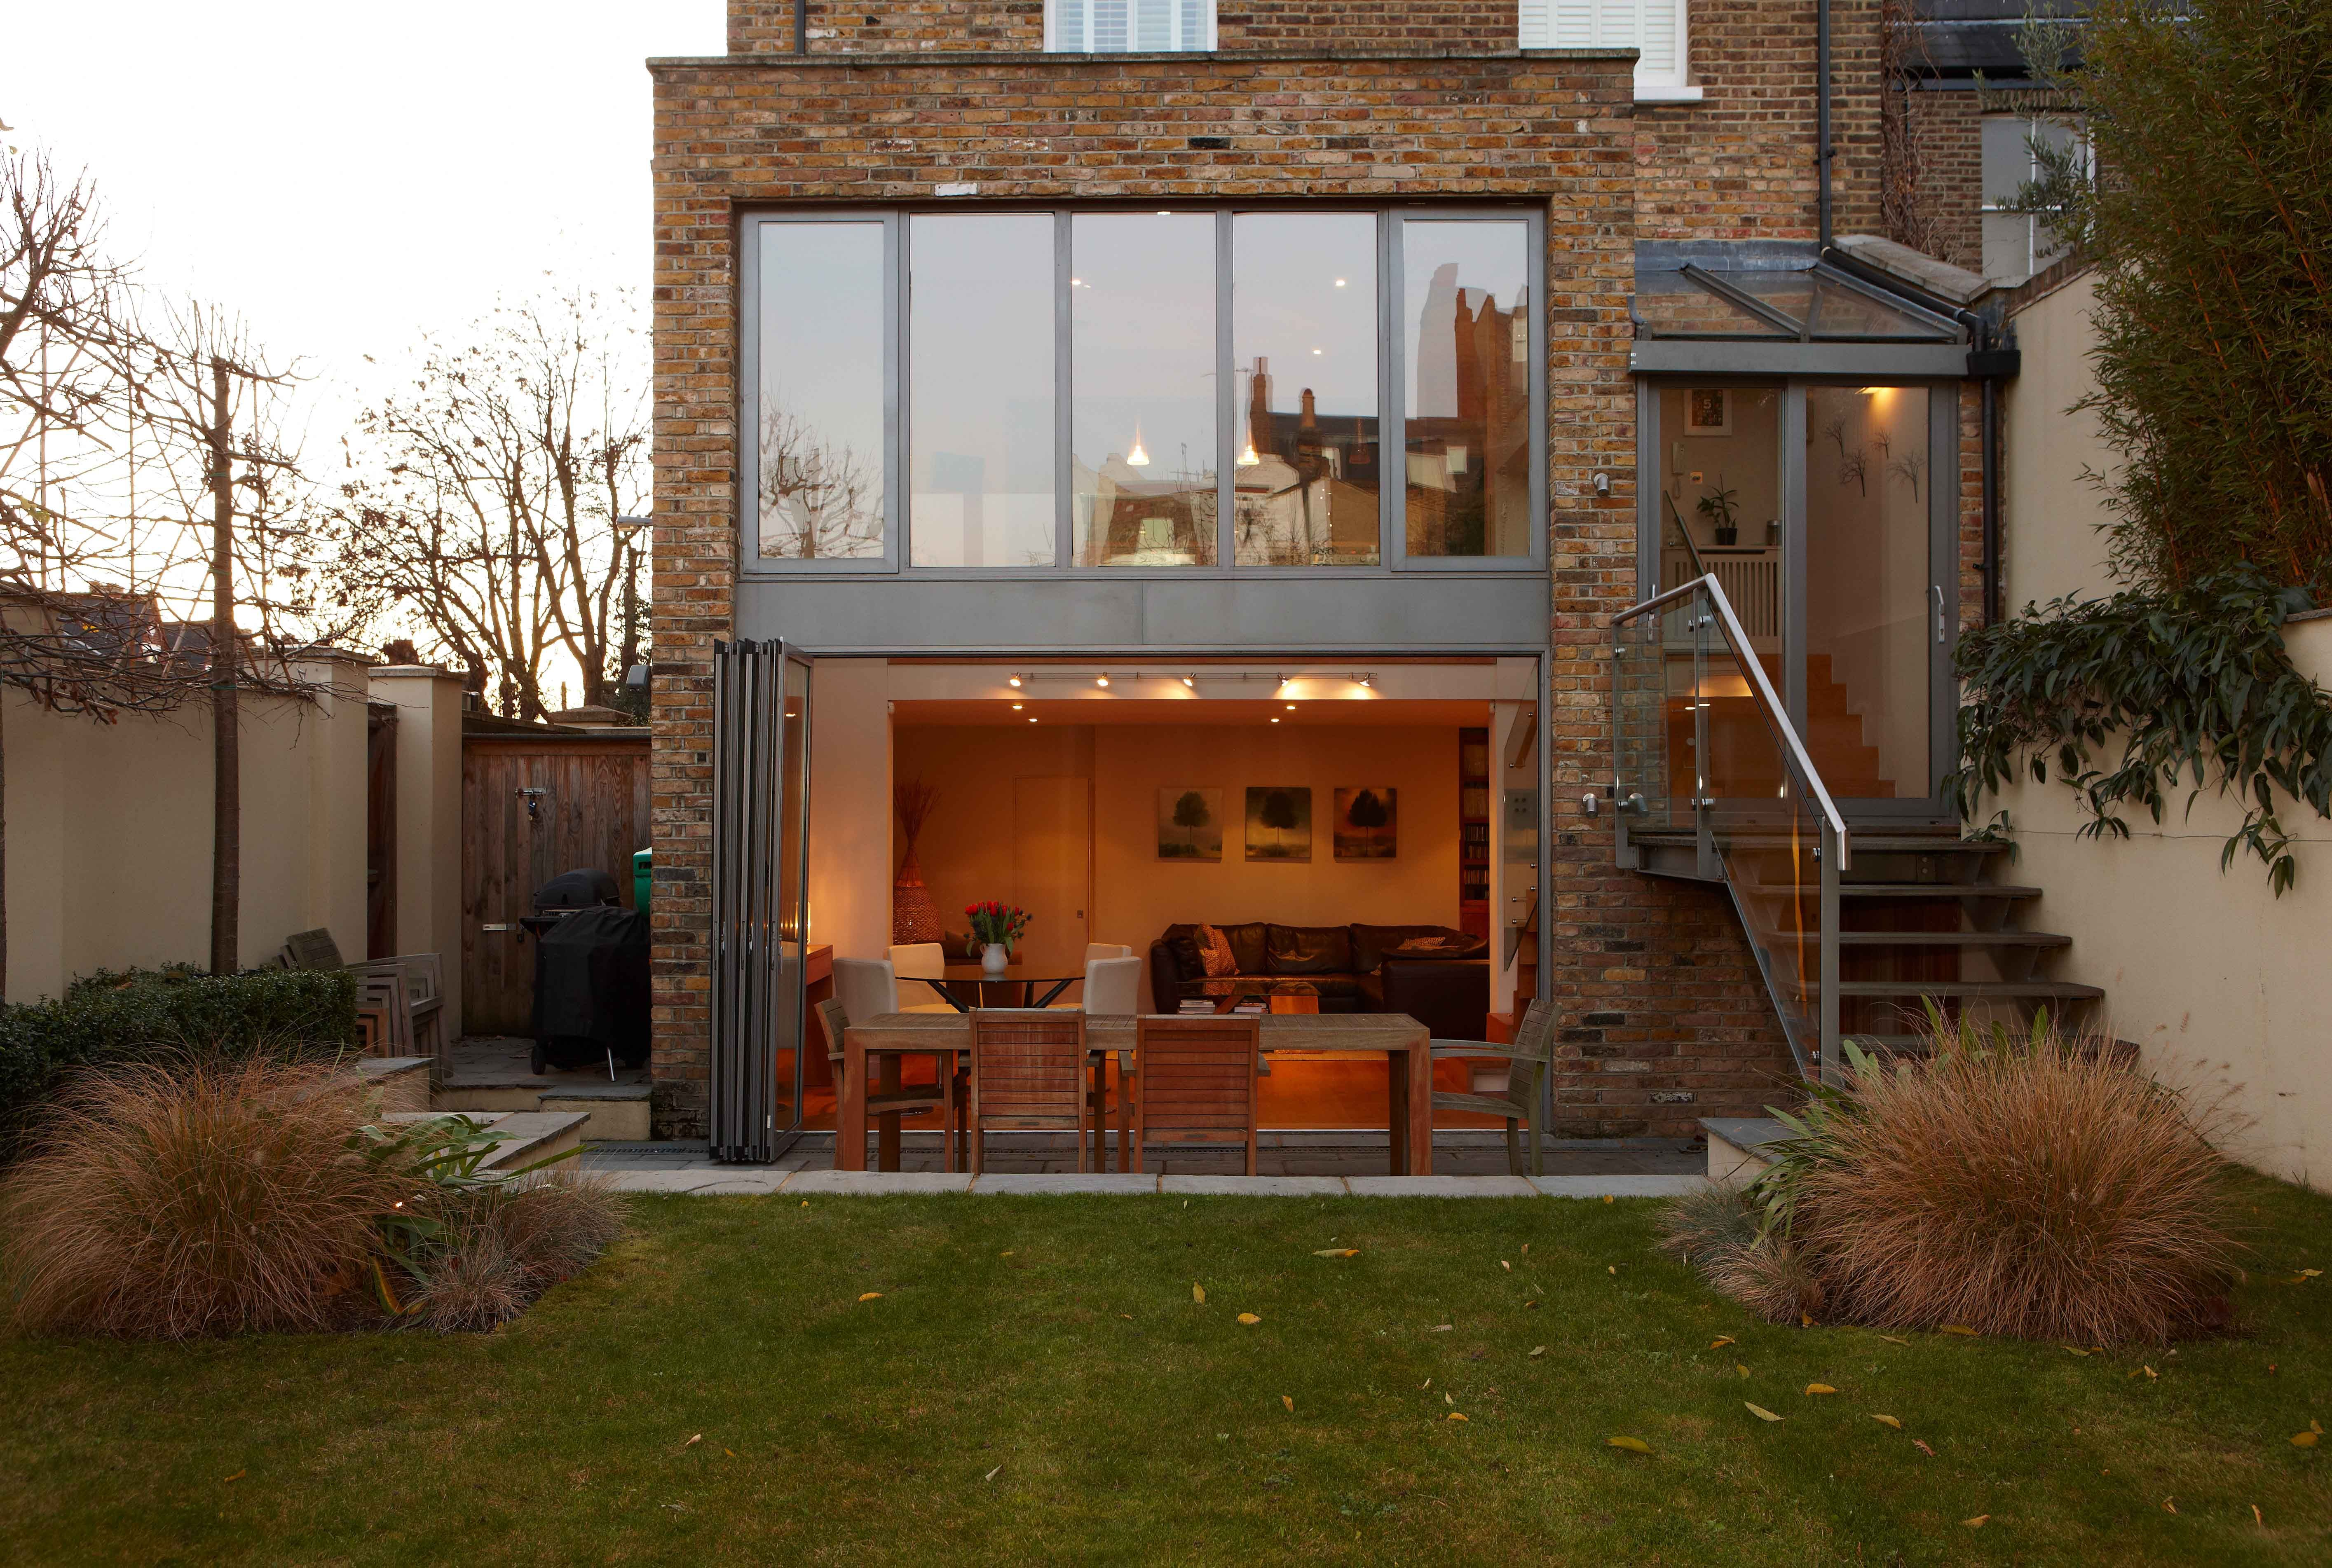 Two Story Home Extension With Bi Folding Doors Artchitecture Extension House Btl Buytolet Home Extension Ideas Pinned By Www Btl Direct Com House Extensions